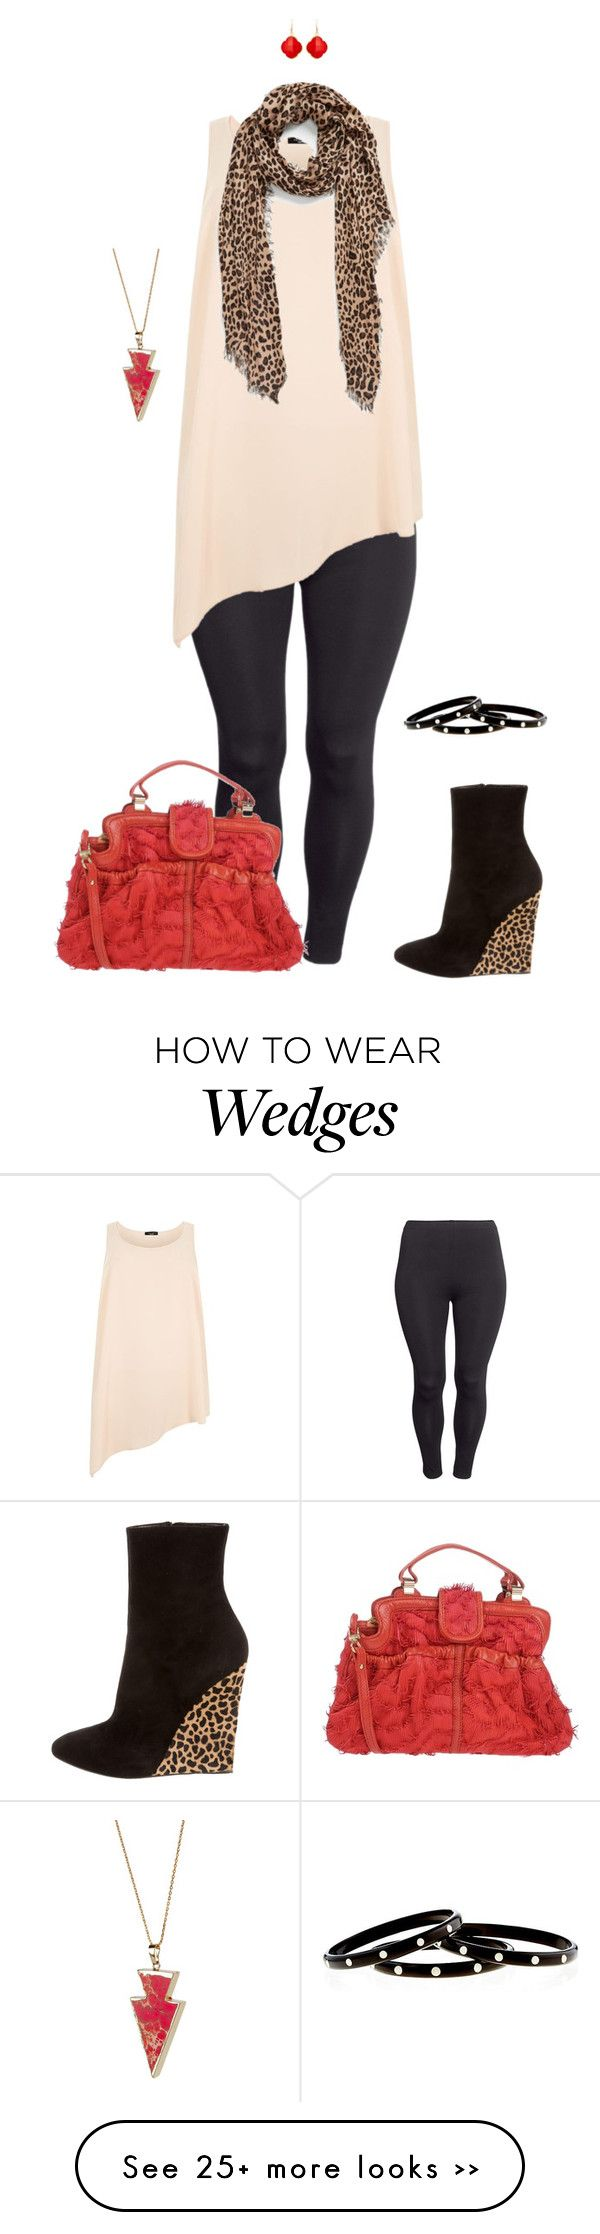 """Happy kitty- plus size"" by gchamama on Polyvore featuring H&M, Giuseppe Zanotti, Jamin Puech, Sole Society, Nest, Avindy and Helix & Felix"